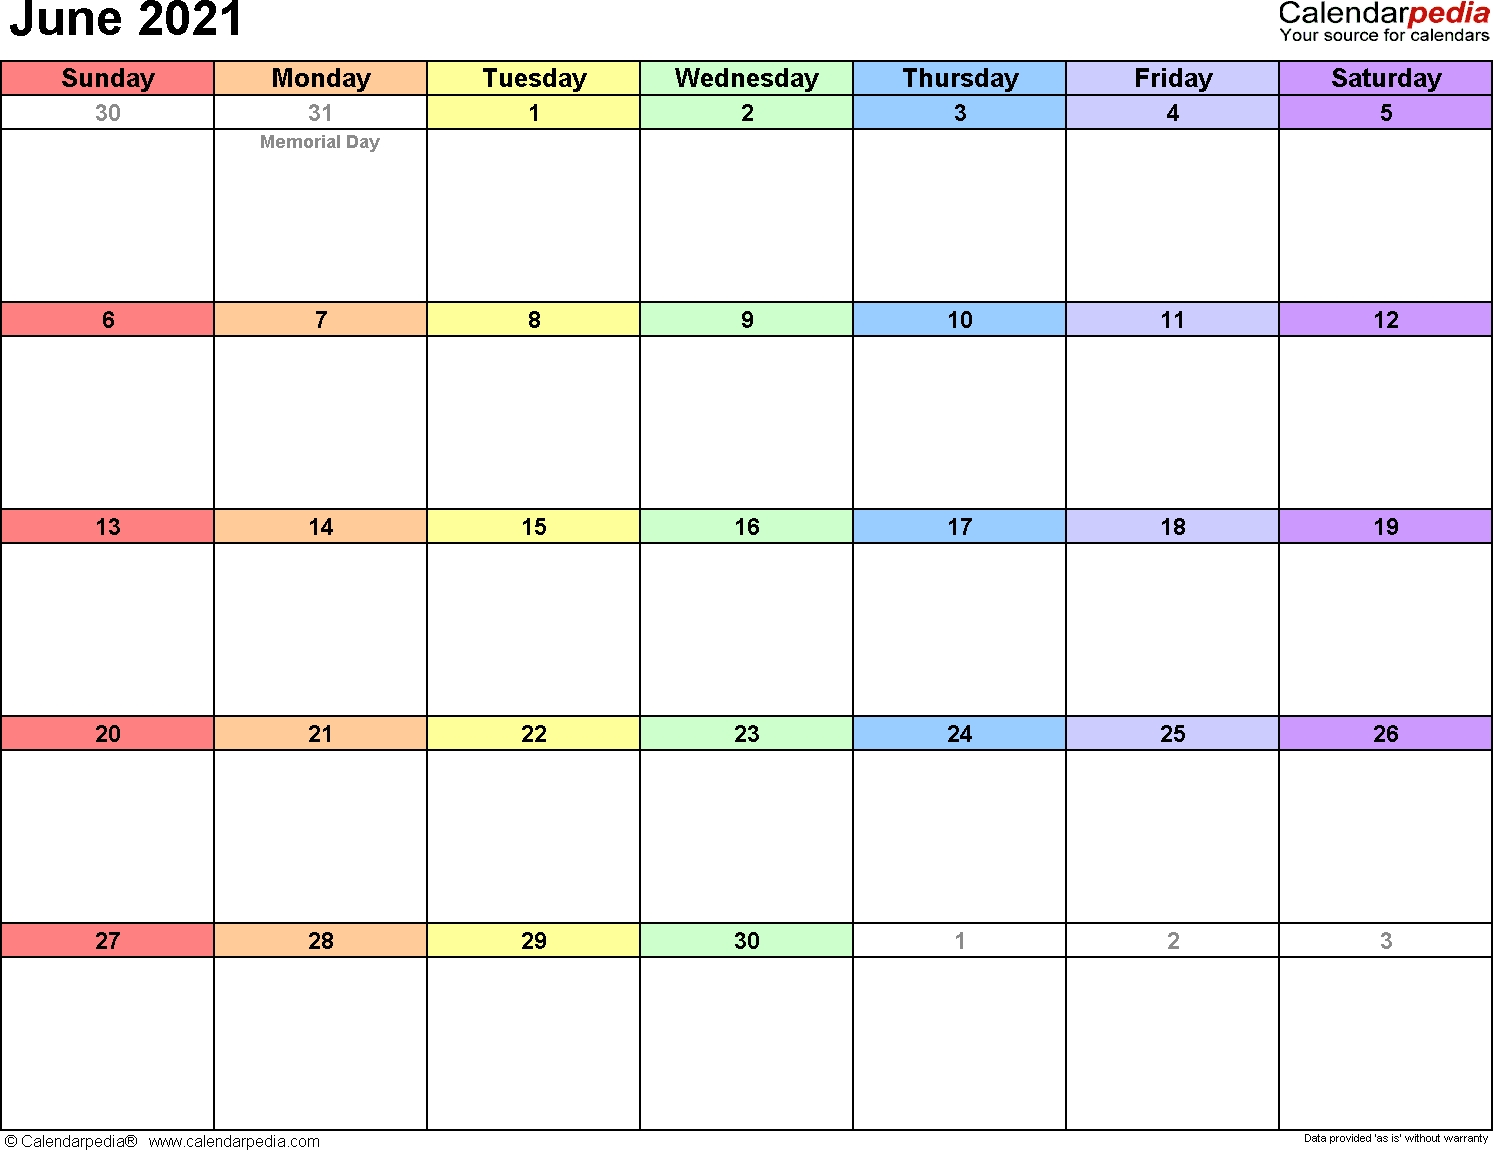 June 2021 Calendars For Word, Excel & Pdf